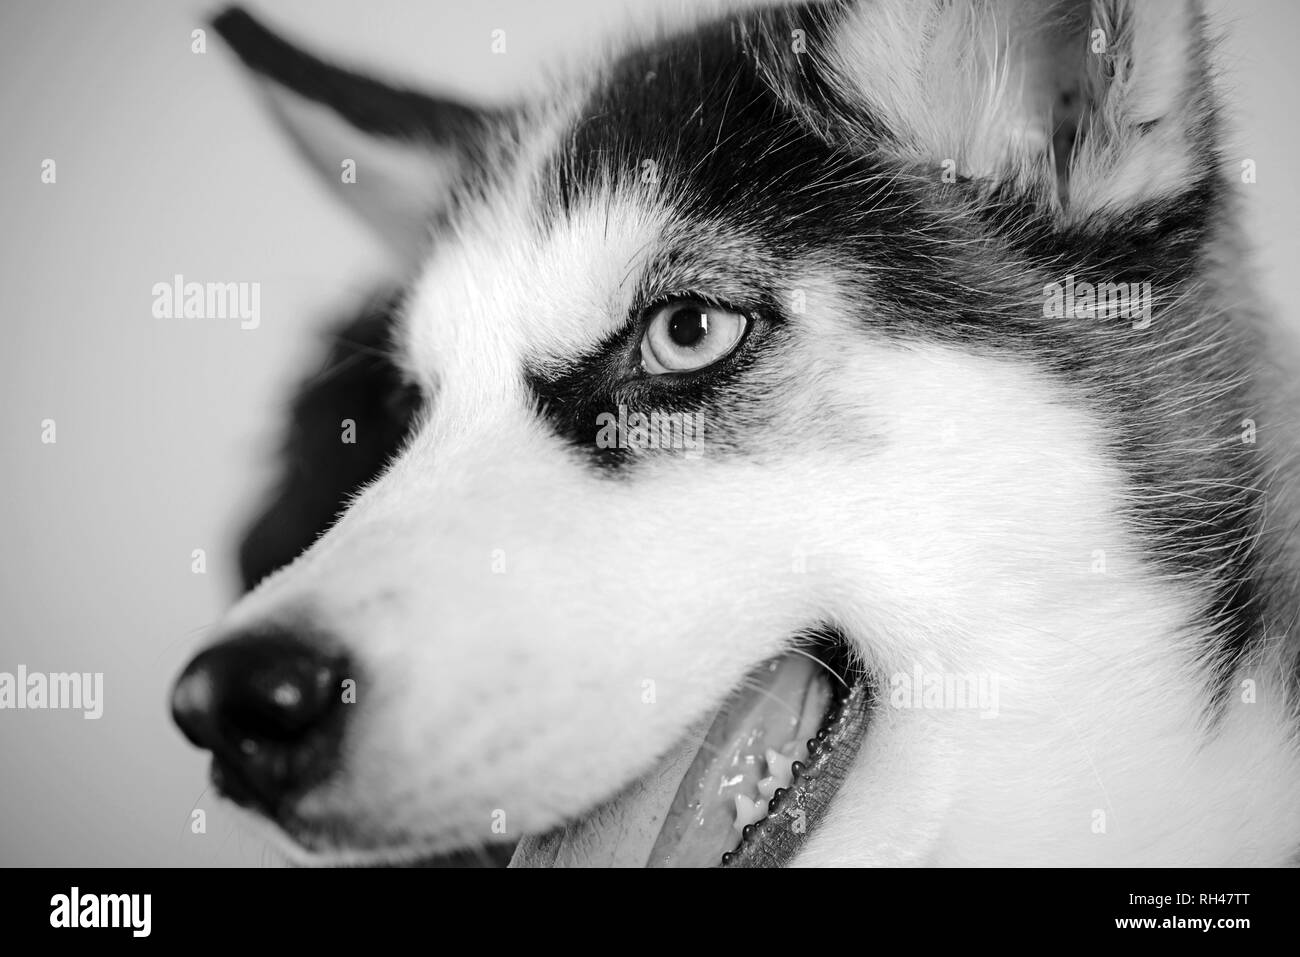 Life is short, play with your dog. Husky with blue eyes and wolf like look. Husky dog. Cute pet dog. Siberian husky is a beautiful purebred dog breed. - Stock Image